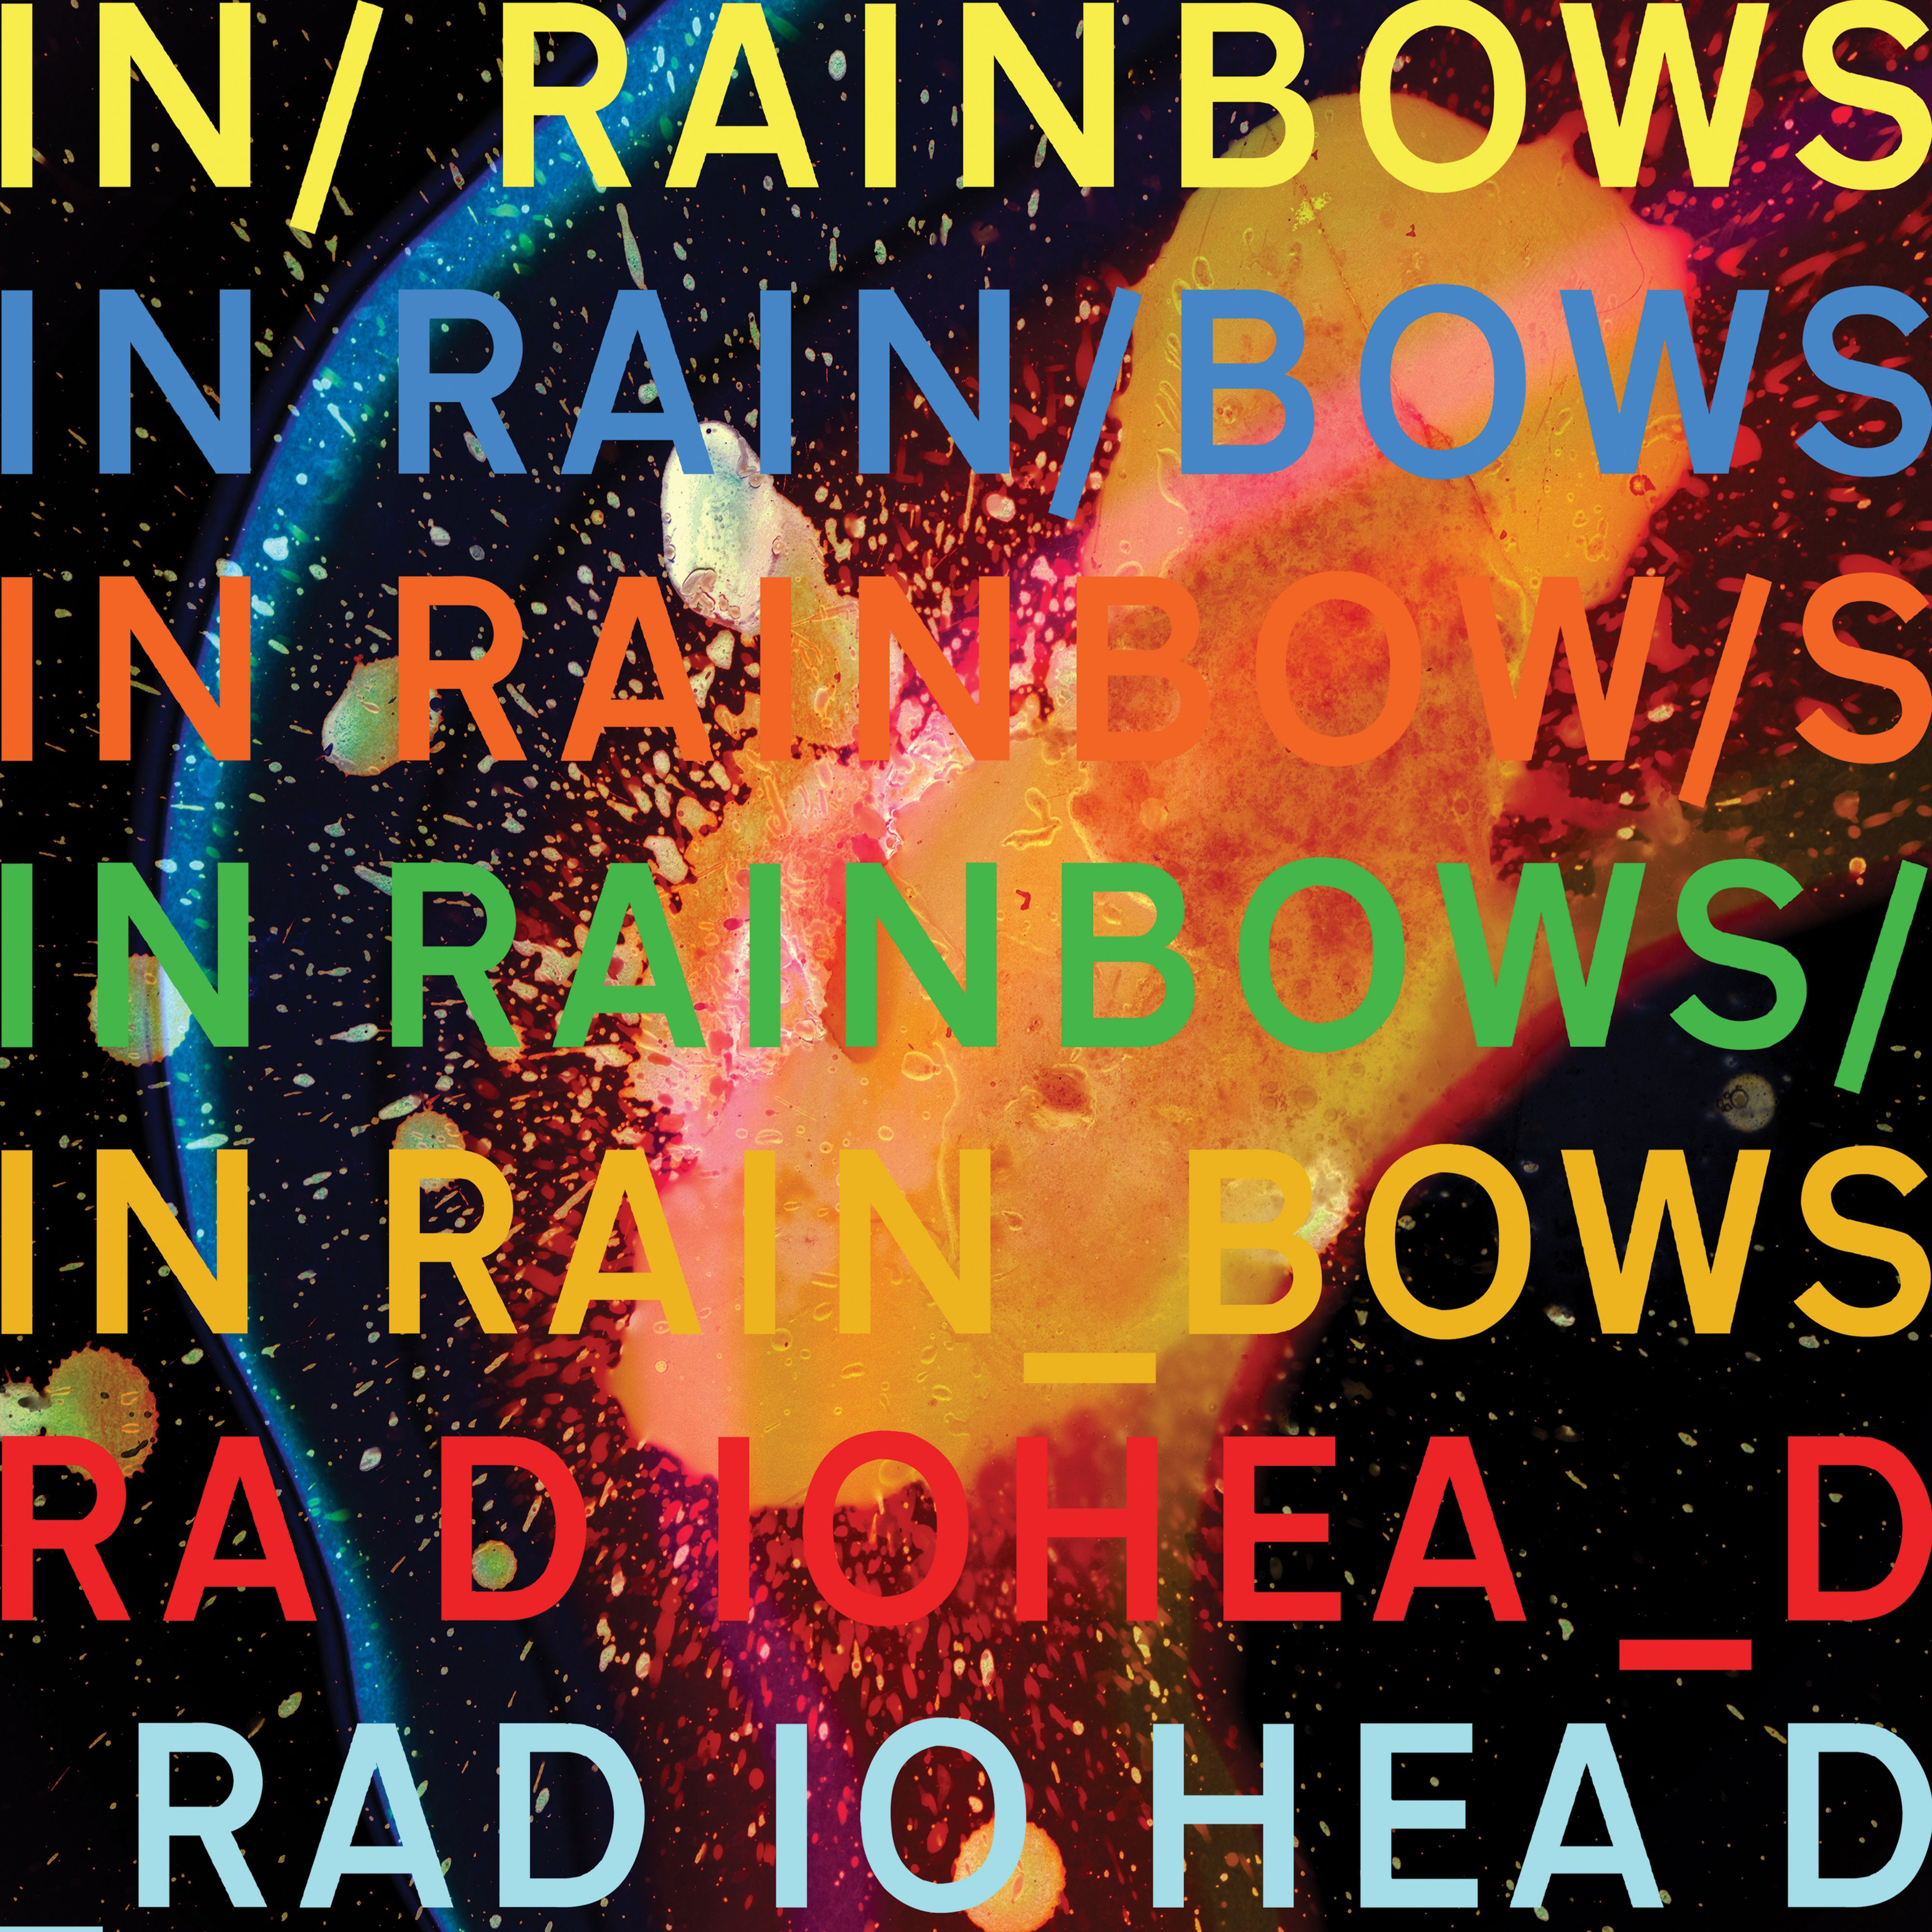 Radiohead In Rainbows With Images Radiohead In Rainbows Music